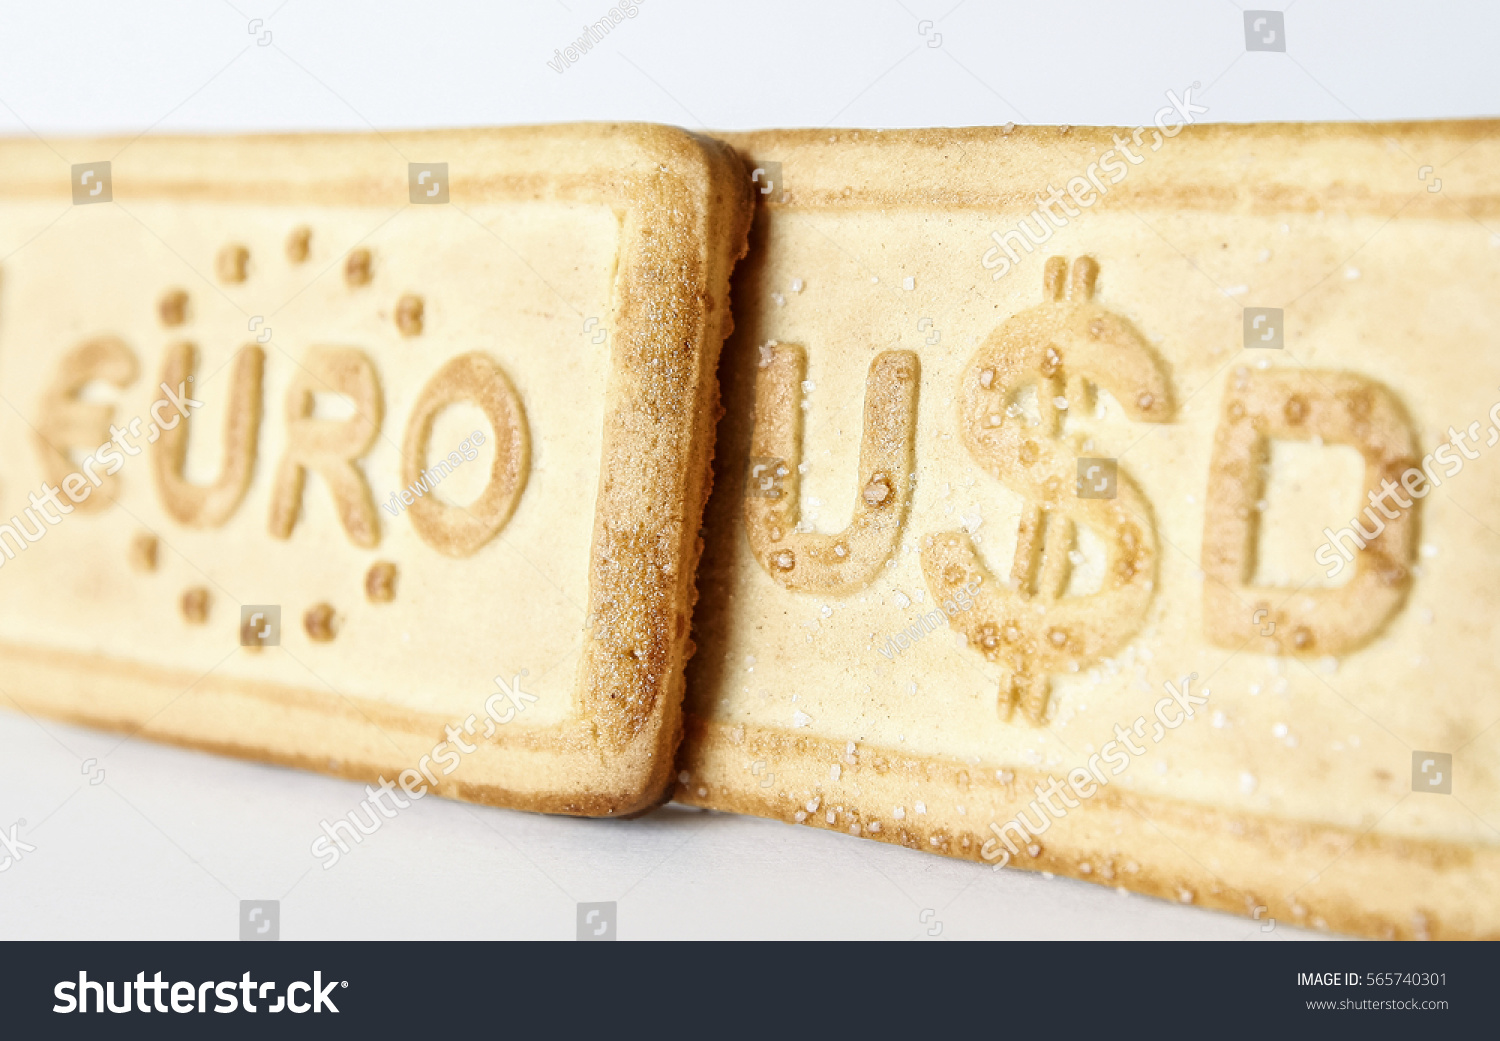 Eurodollar currency symbols exchange rate pastry stock photo euro dollar currency symbols exchange rate pastry close up on white background biocorpaavc